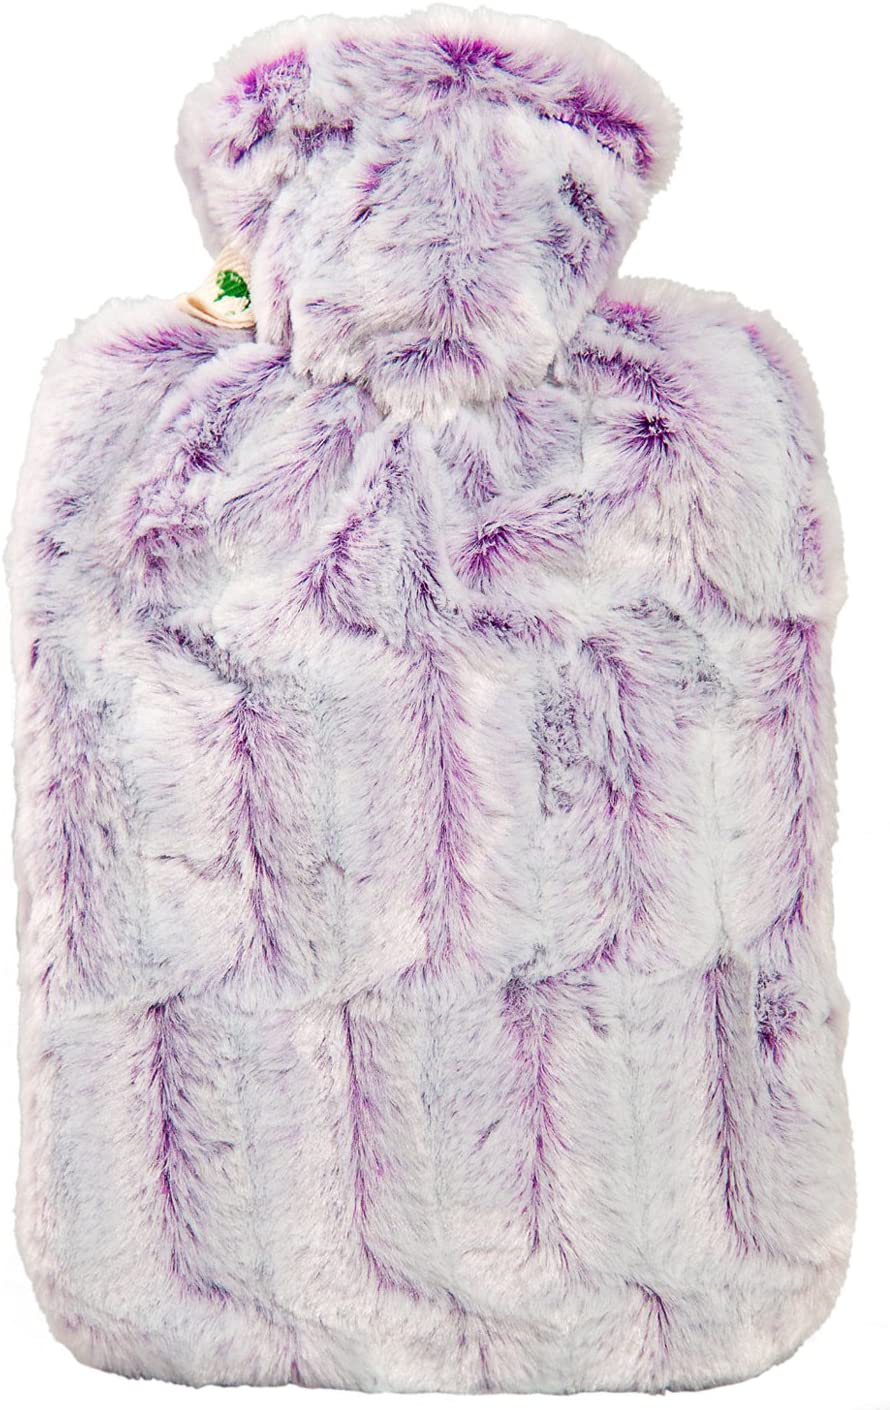 Hot Water Bottle with Cover - Hot Cold Pack Made of Burst Resistant Thermoplastic with Fleece Sleeve Helps Relieve Muscle Aches & Pains, Menstrual Cramps, Flu Symptoms (1.8L Faux Fur, Purple/Silver)